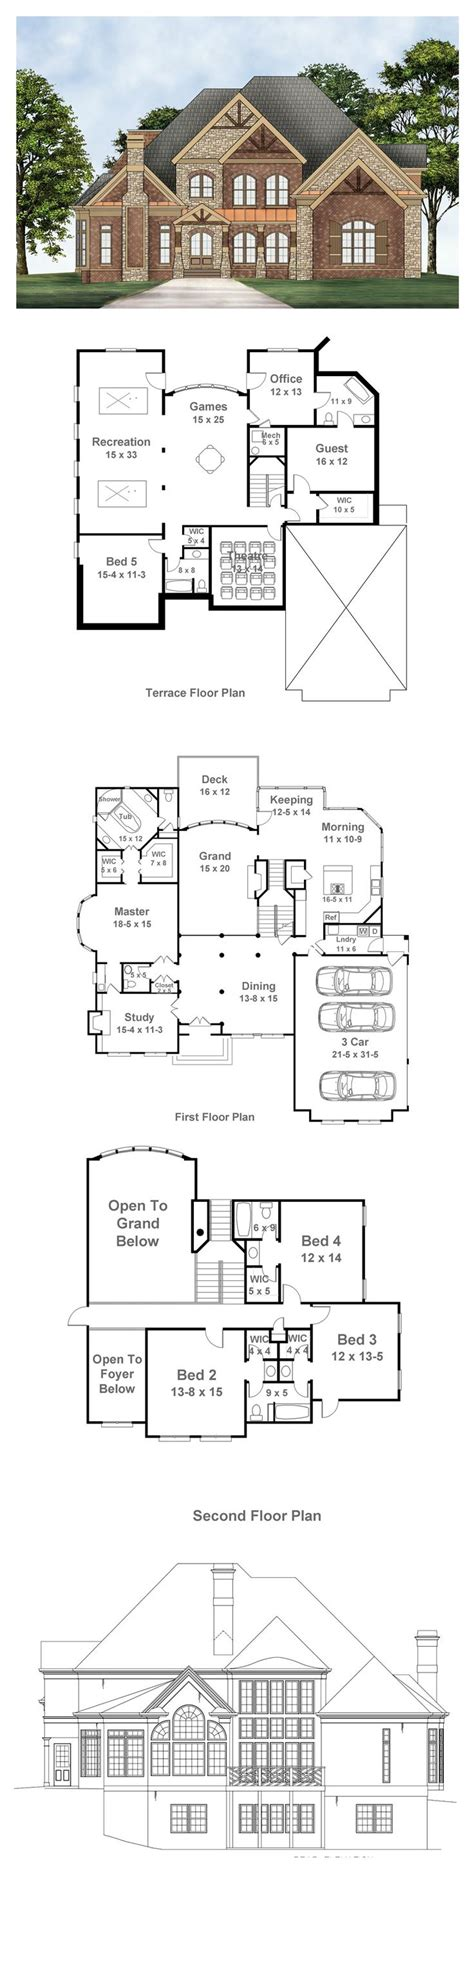 Revival House Plans by Revival House Plan 72096 Total Living Area 3143